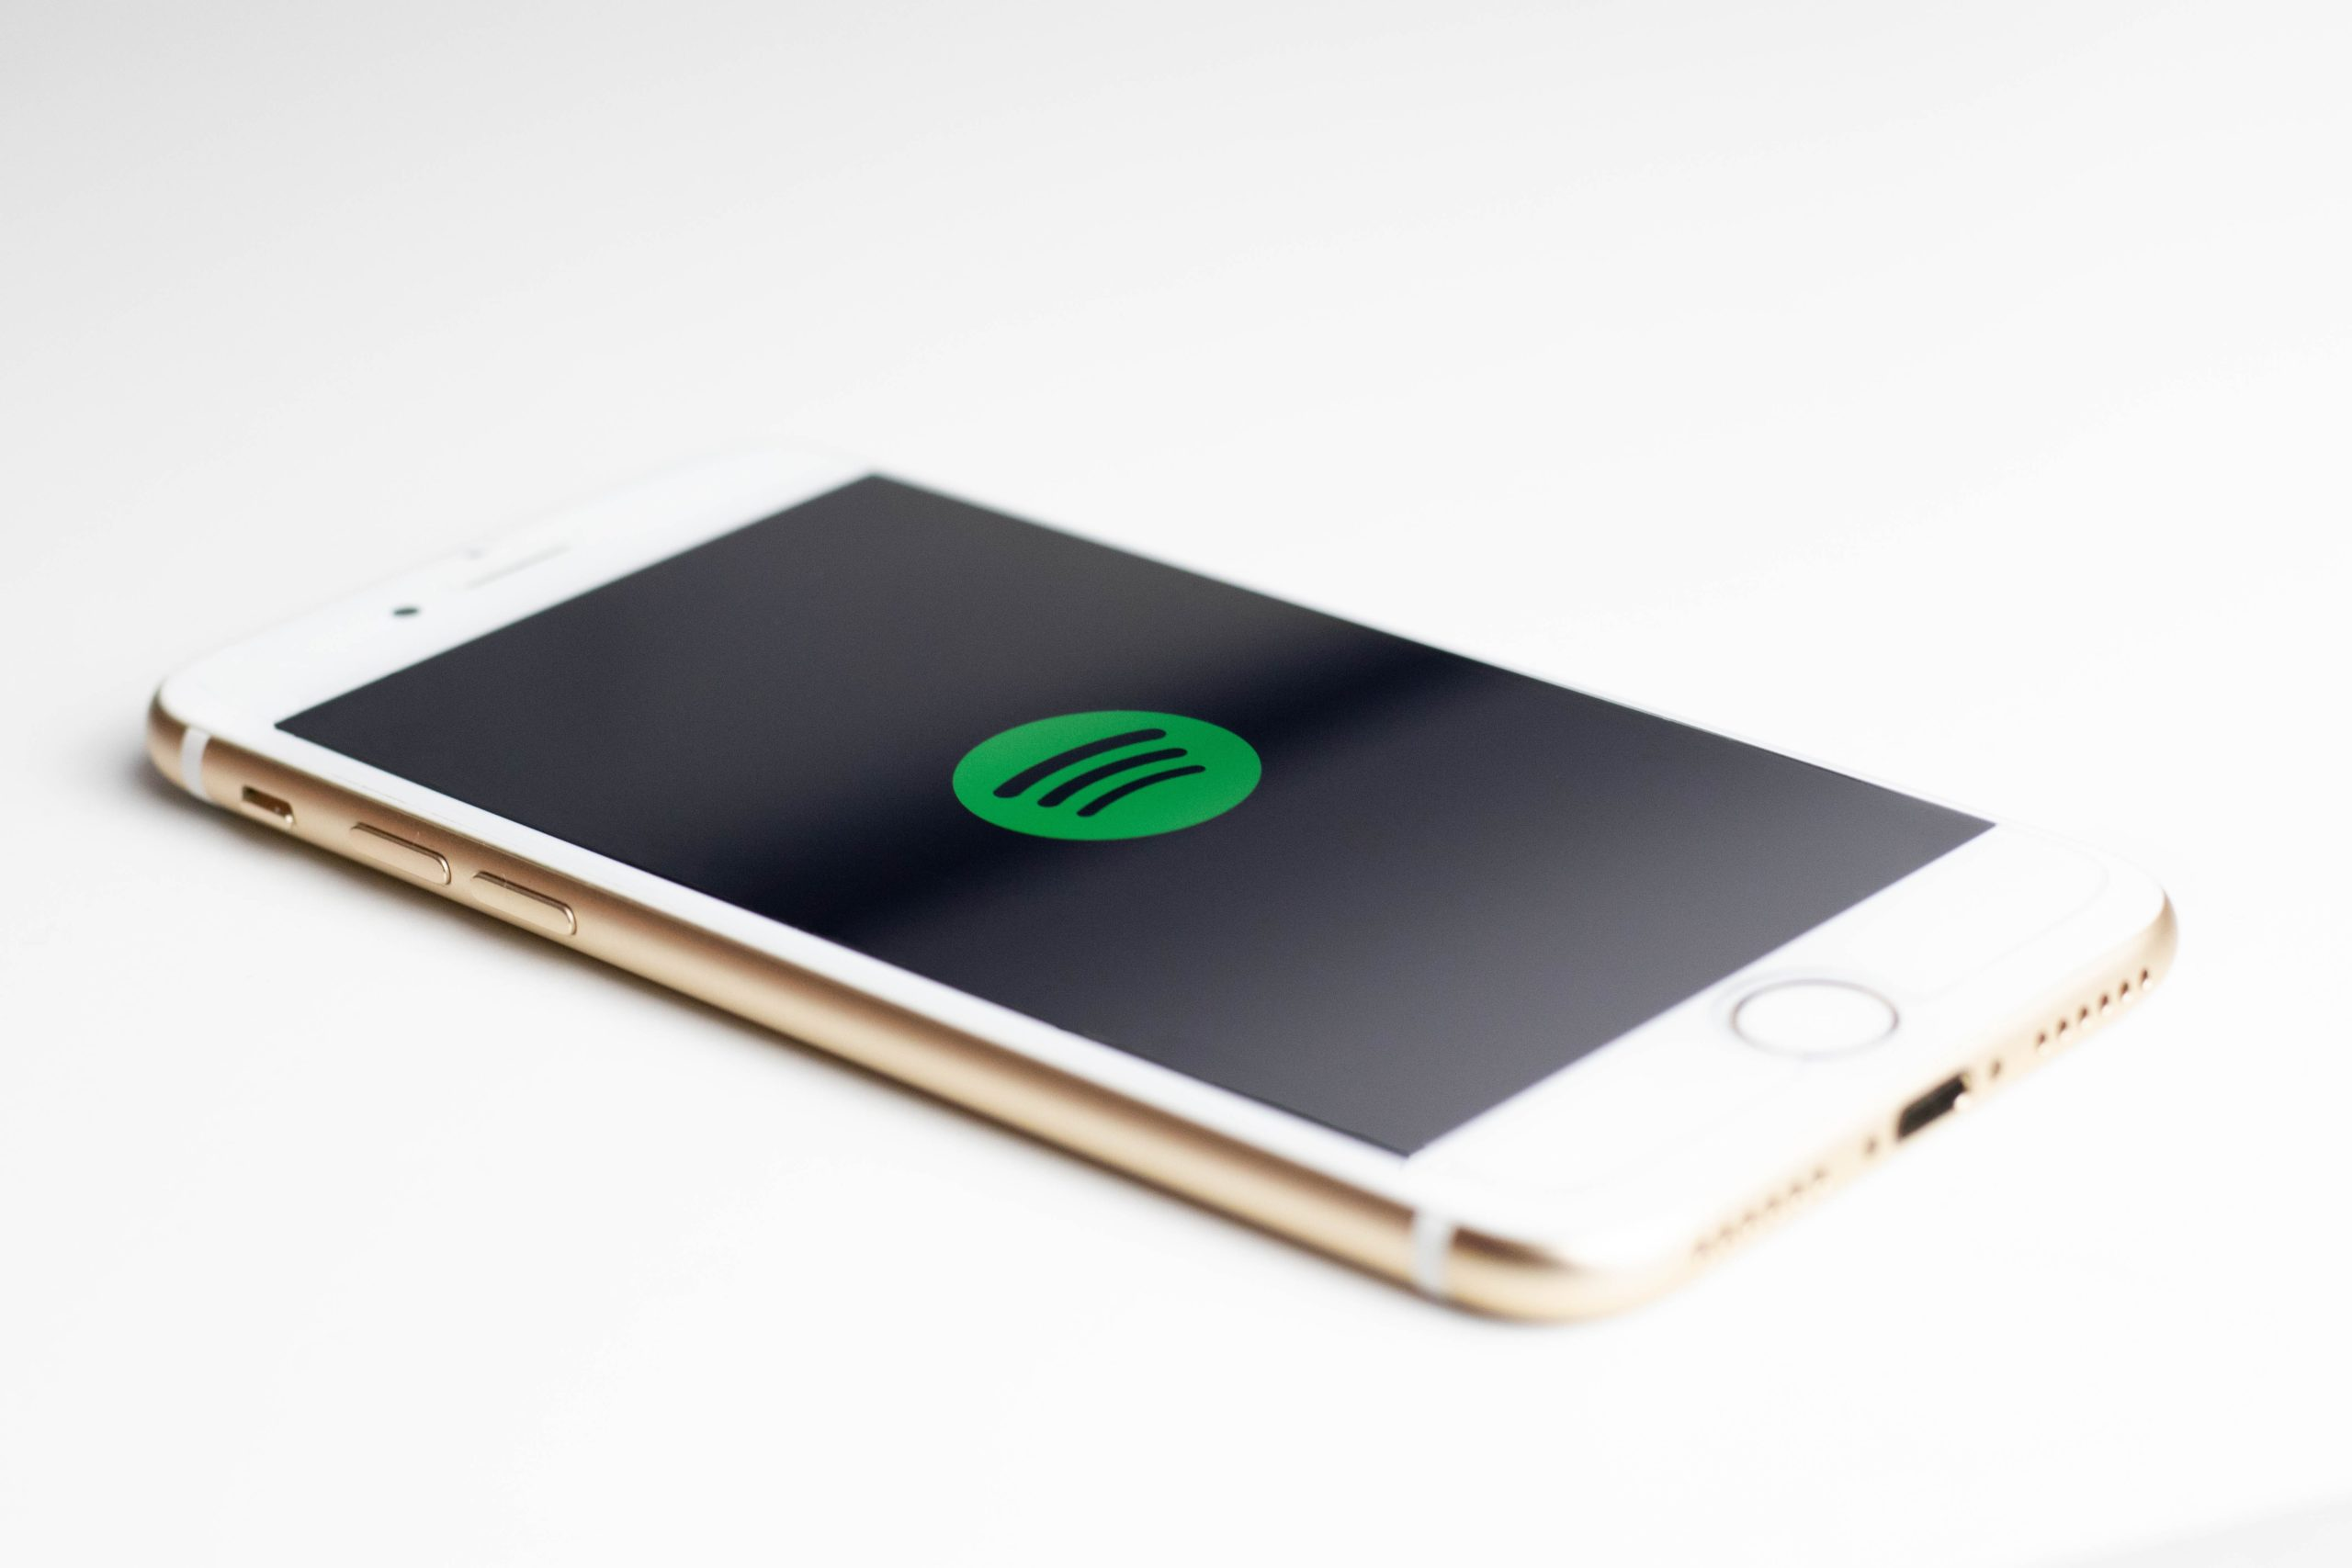 spotify logo on an iphone